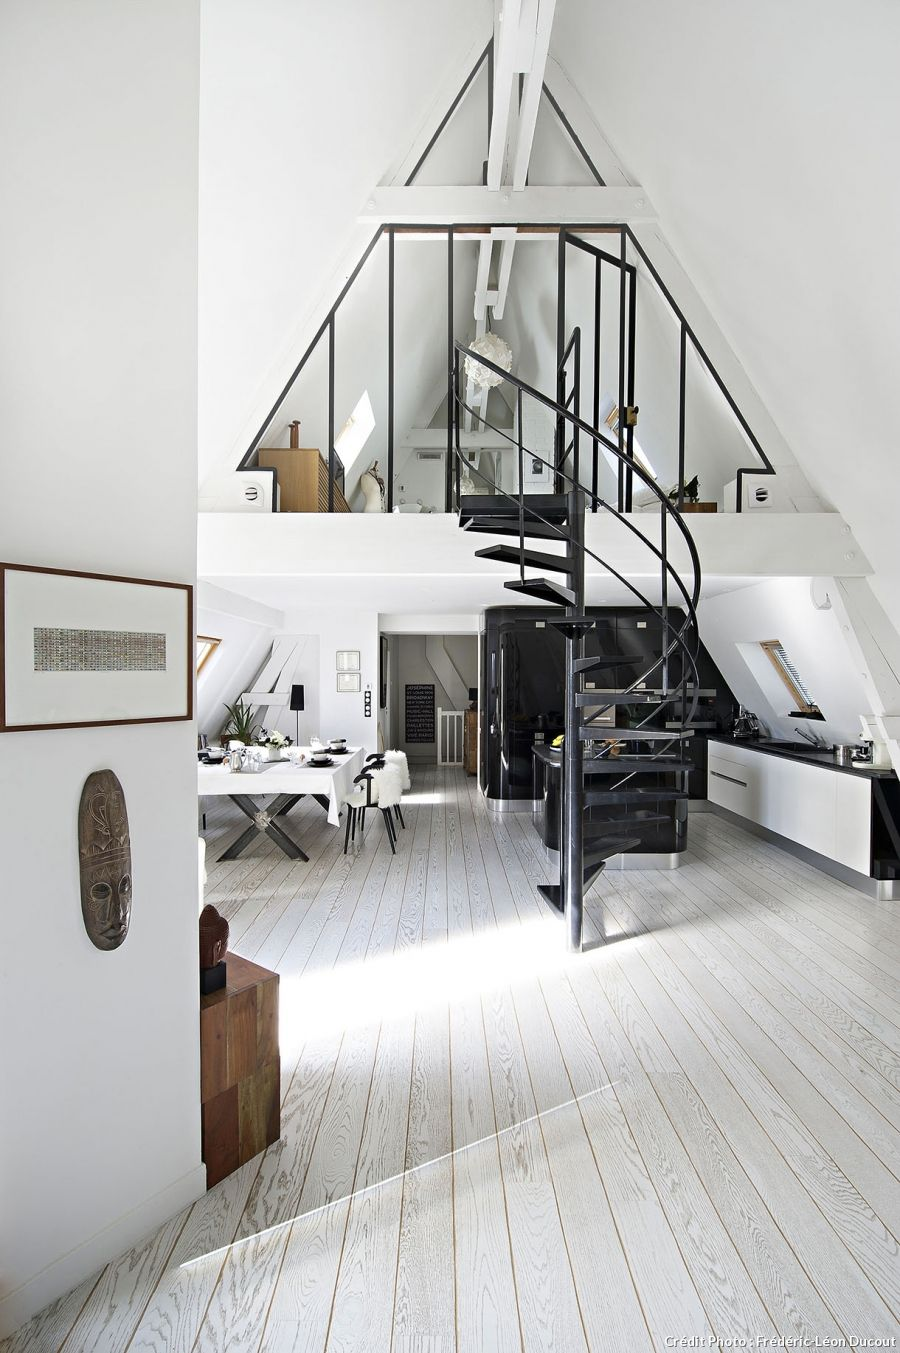 Loft in paris kitchen and dining room in black and white love the spiral staircase in the middle